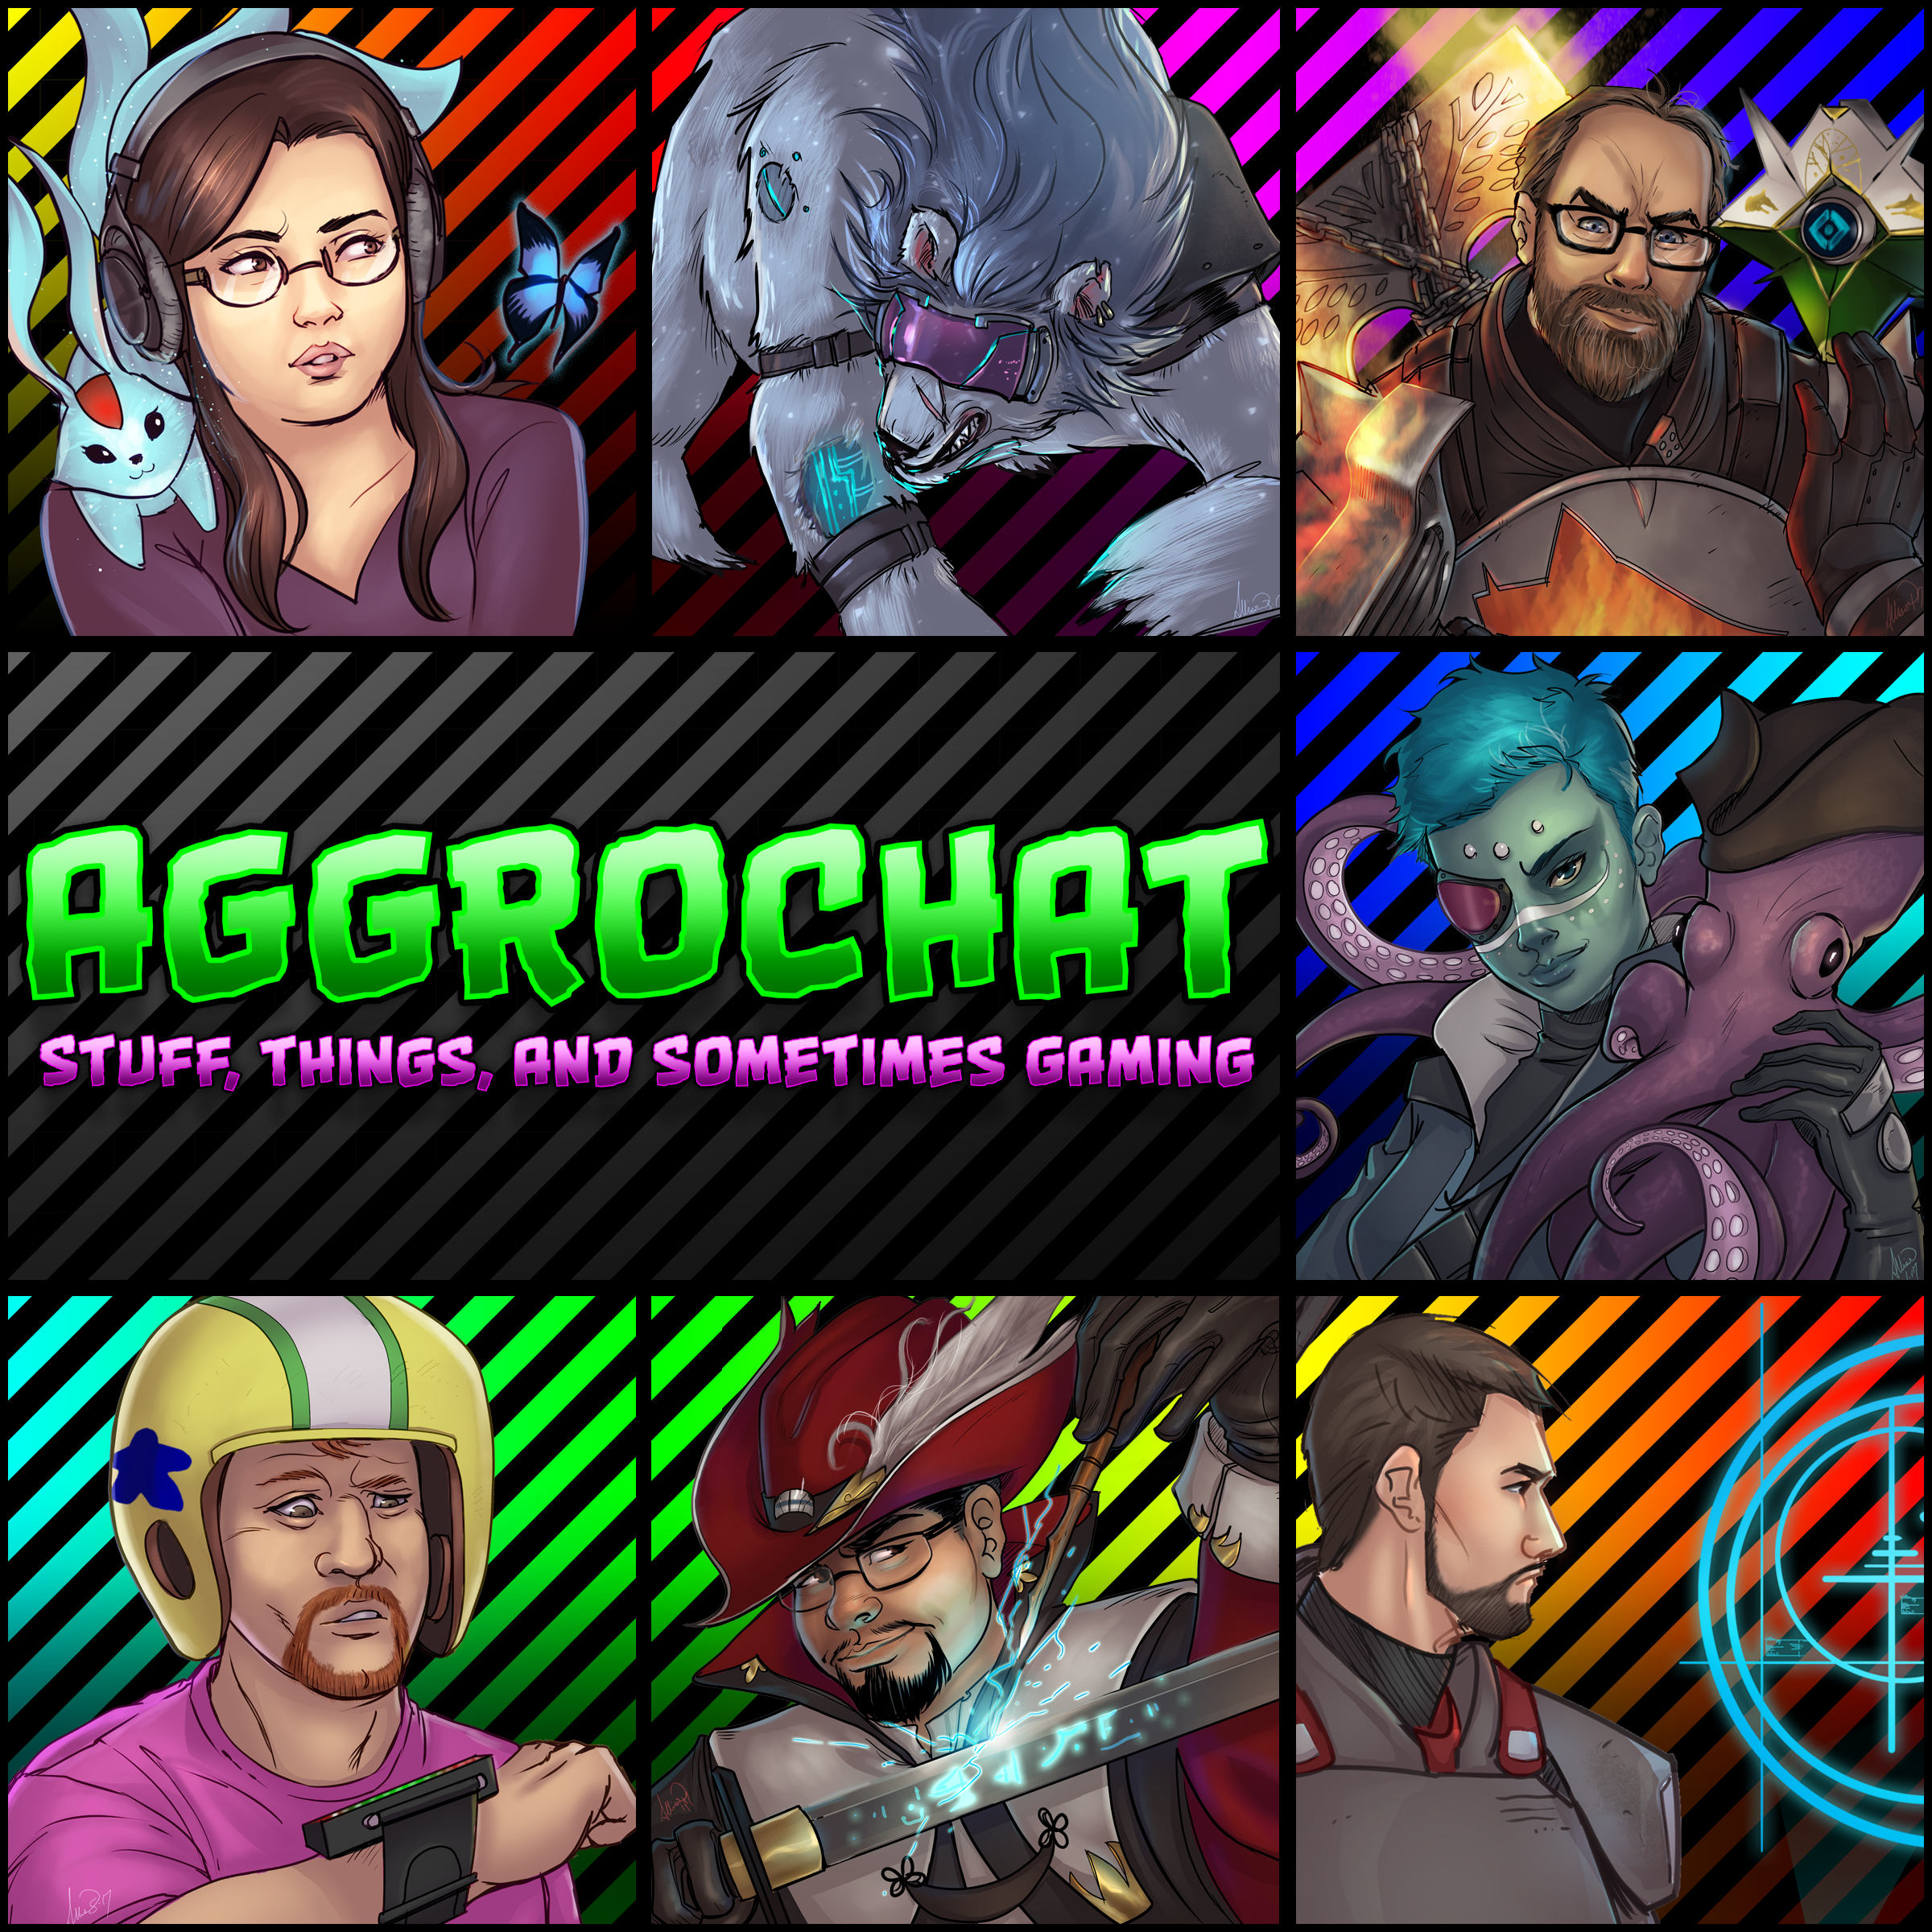 AggroChat: Tales of the Aggronaut Podcast show art